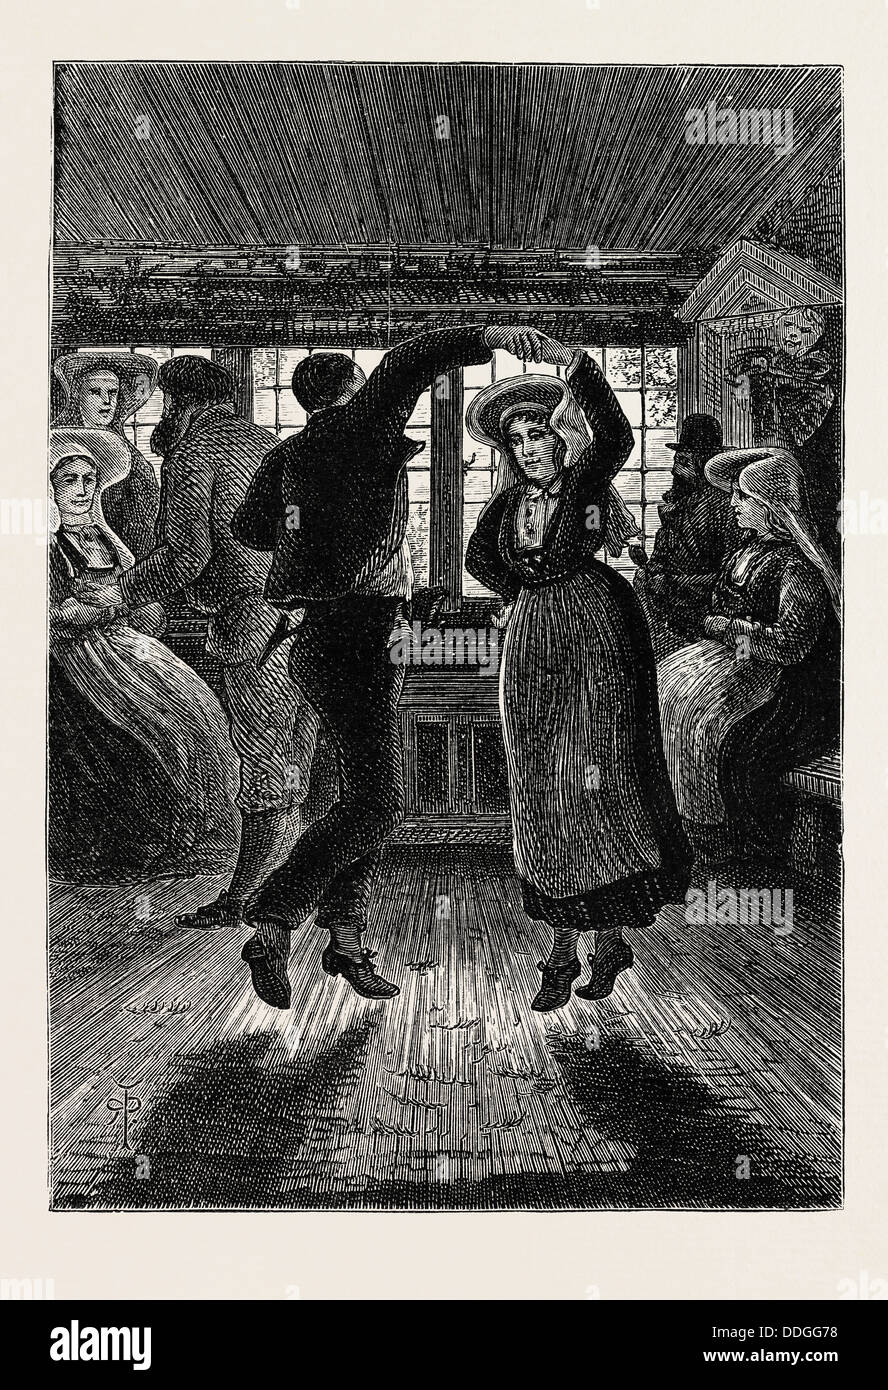 THE SPRING DANCE - Stock Image